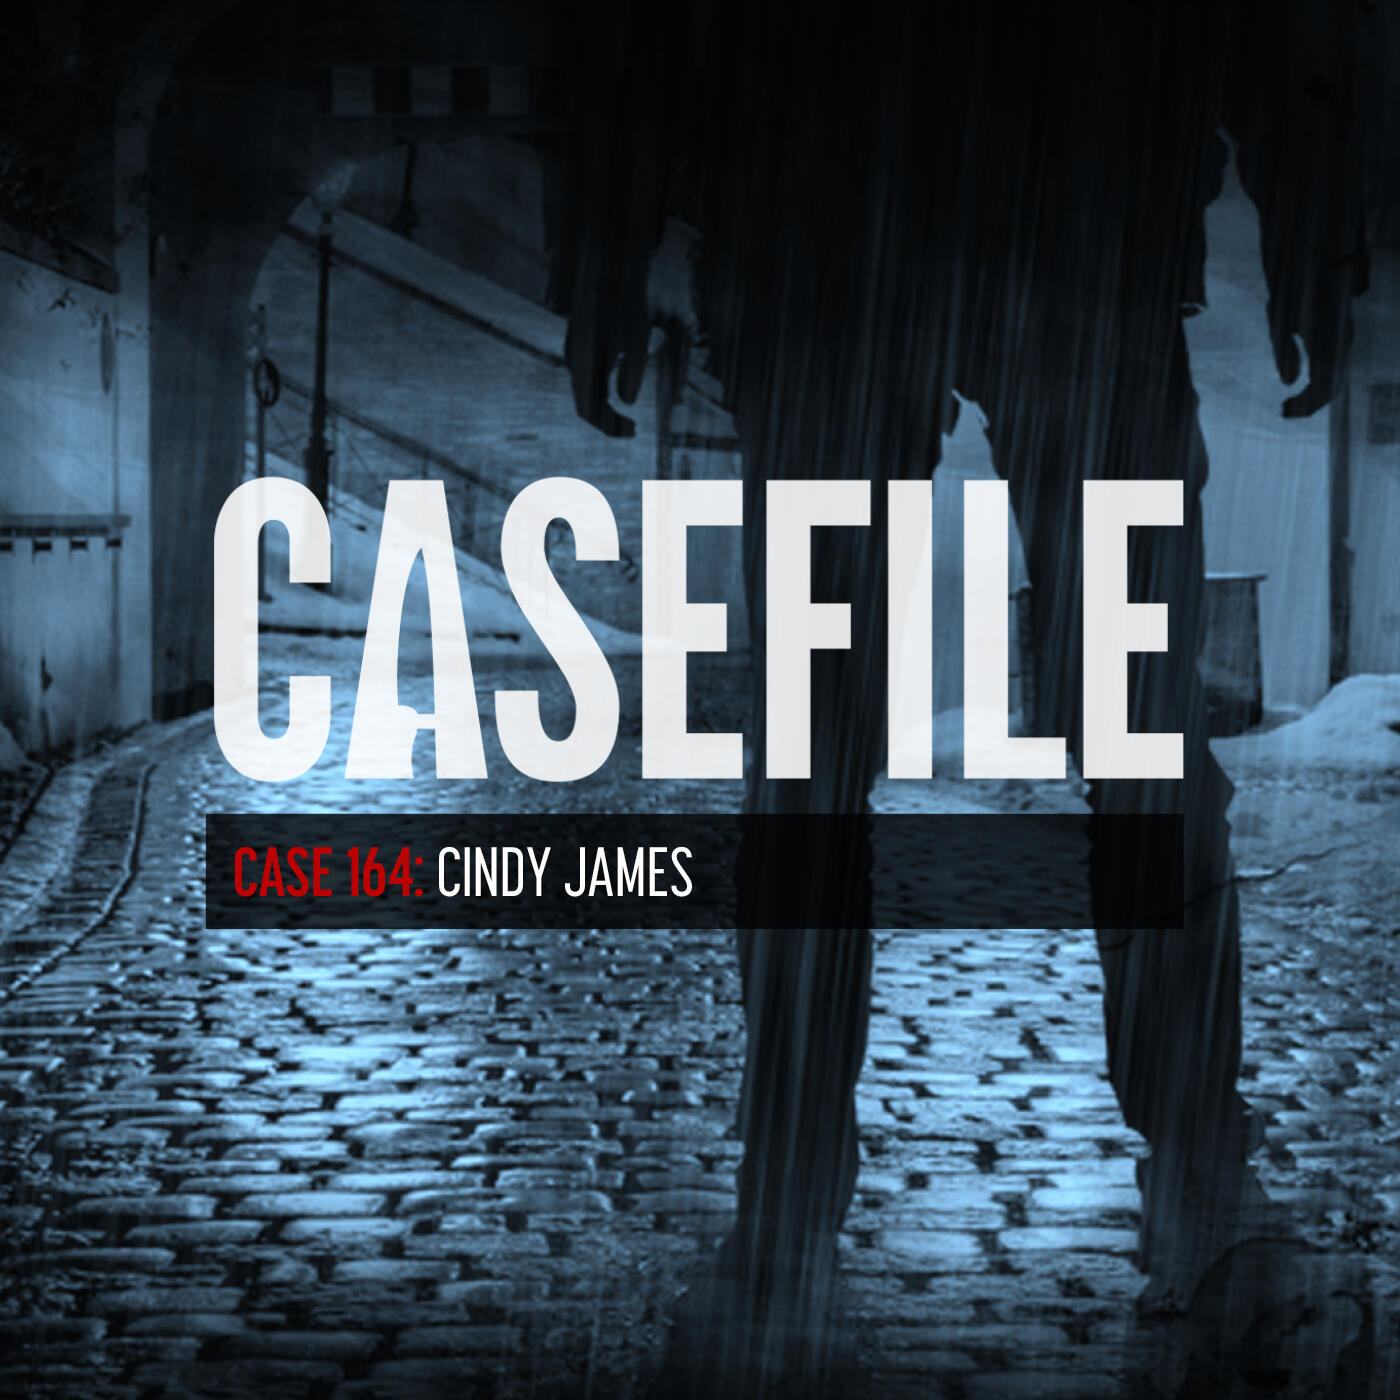 Case 164: Cindy James